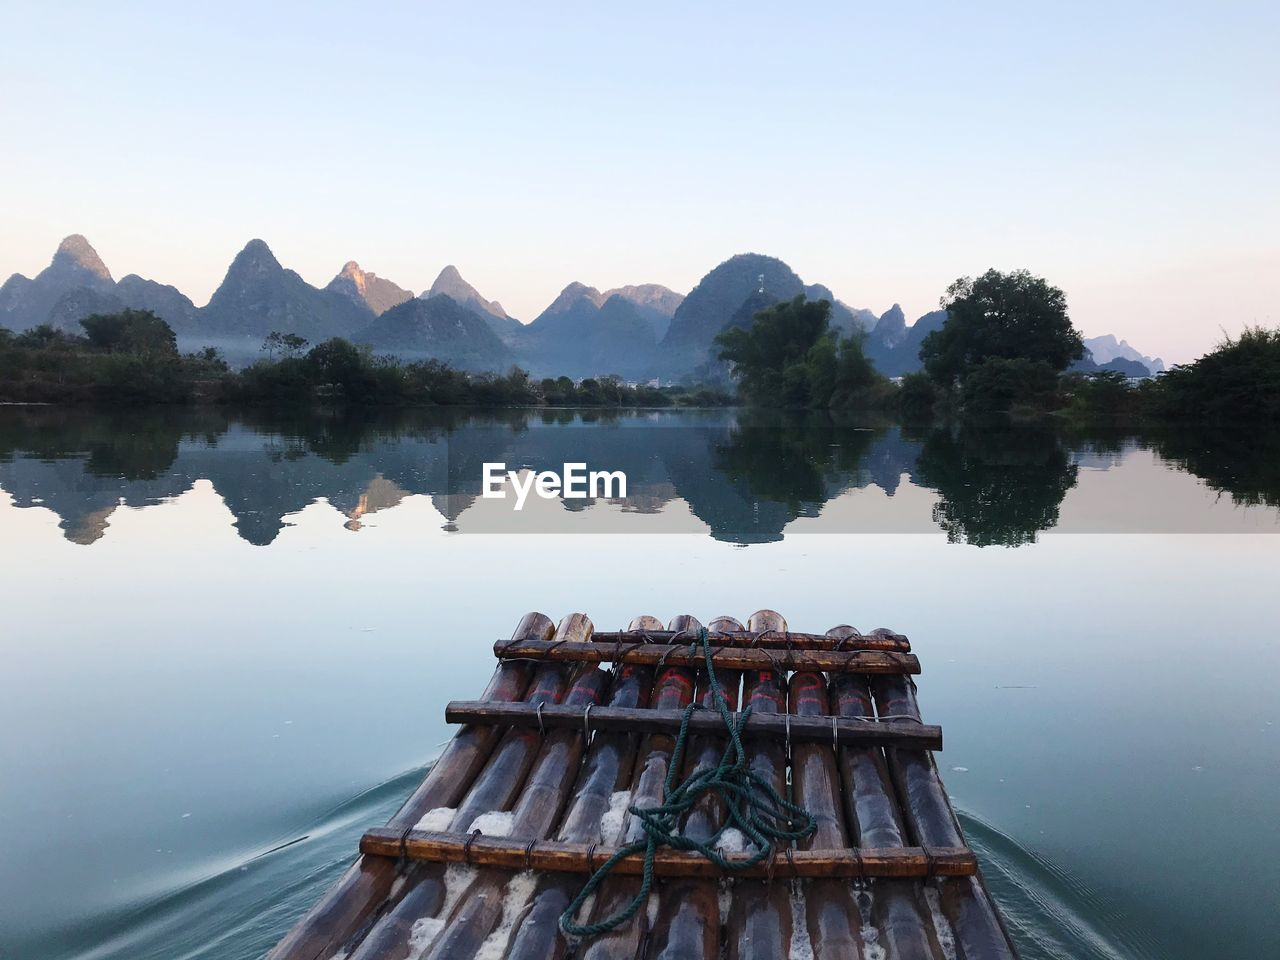 water, reflection, sky, scenics - nature, beauty in nature, lake, tranquility, nature, tranquil scene, non-urban scene, nautical vessel, idyllic, mountain, tree, clear sky, no people, transportation, mode of transportation, day, outdoors, rowboat